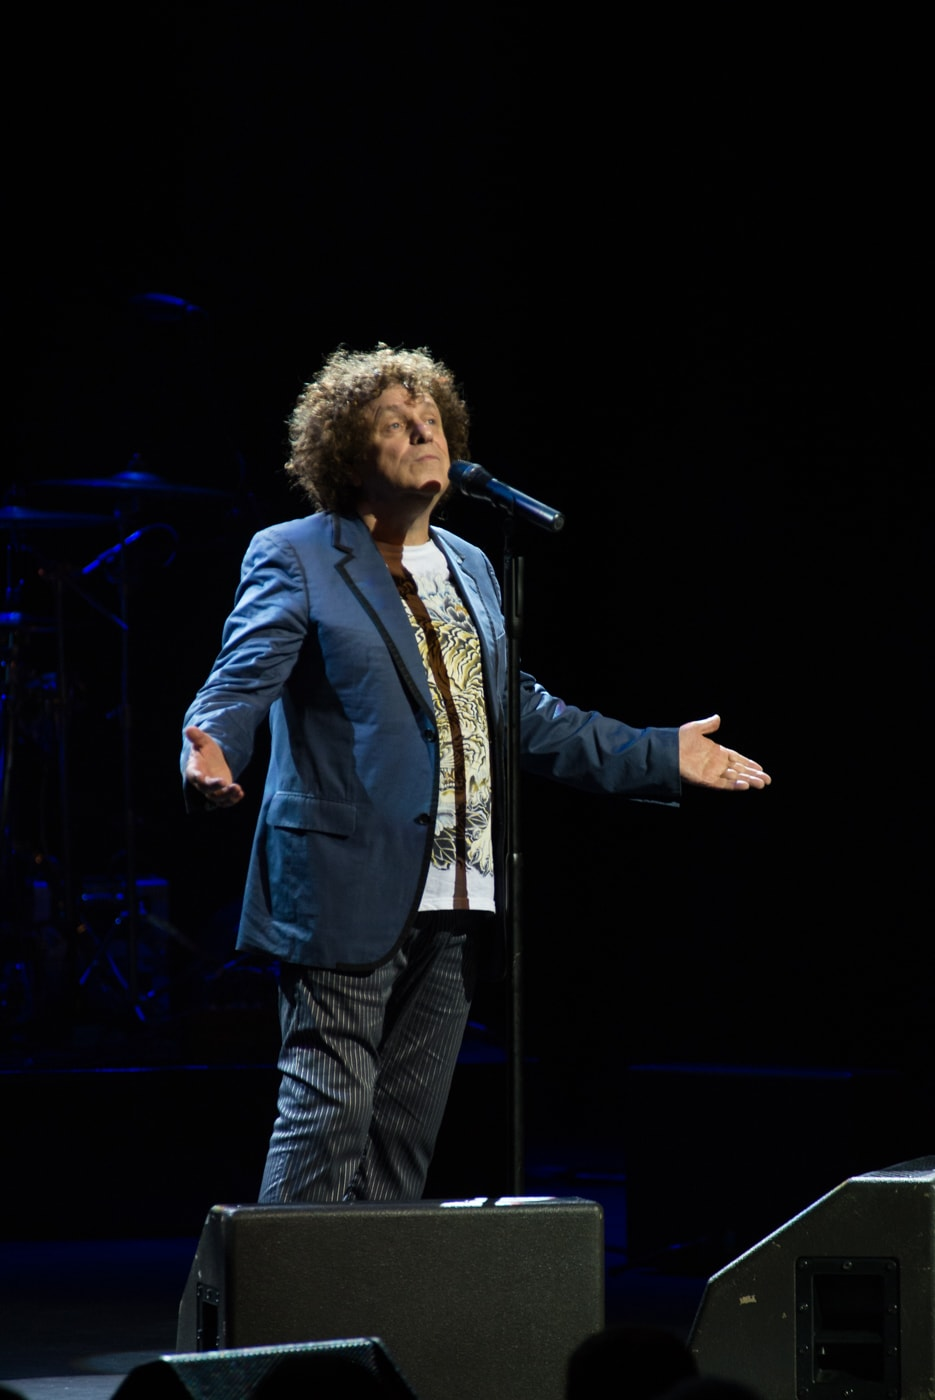 Leo Sayer at Bord Gais Energy Theatre by Sean Smyth (16-10-15) (55 of 129)